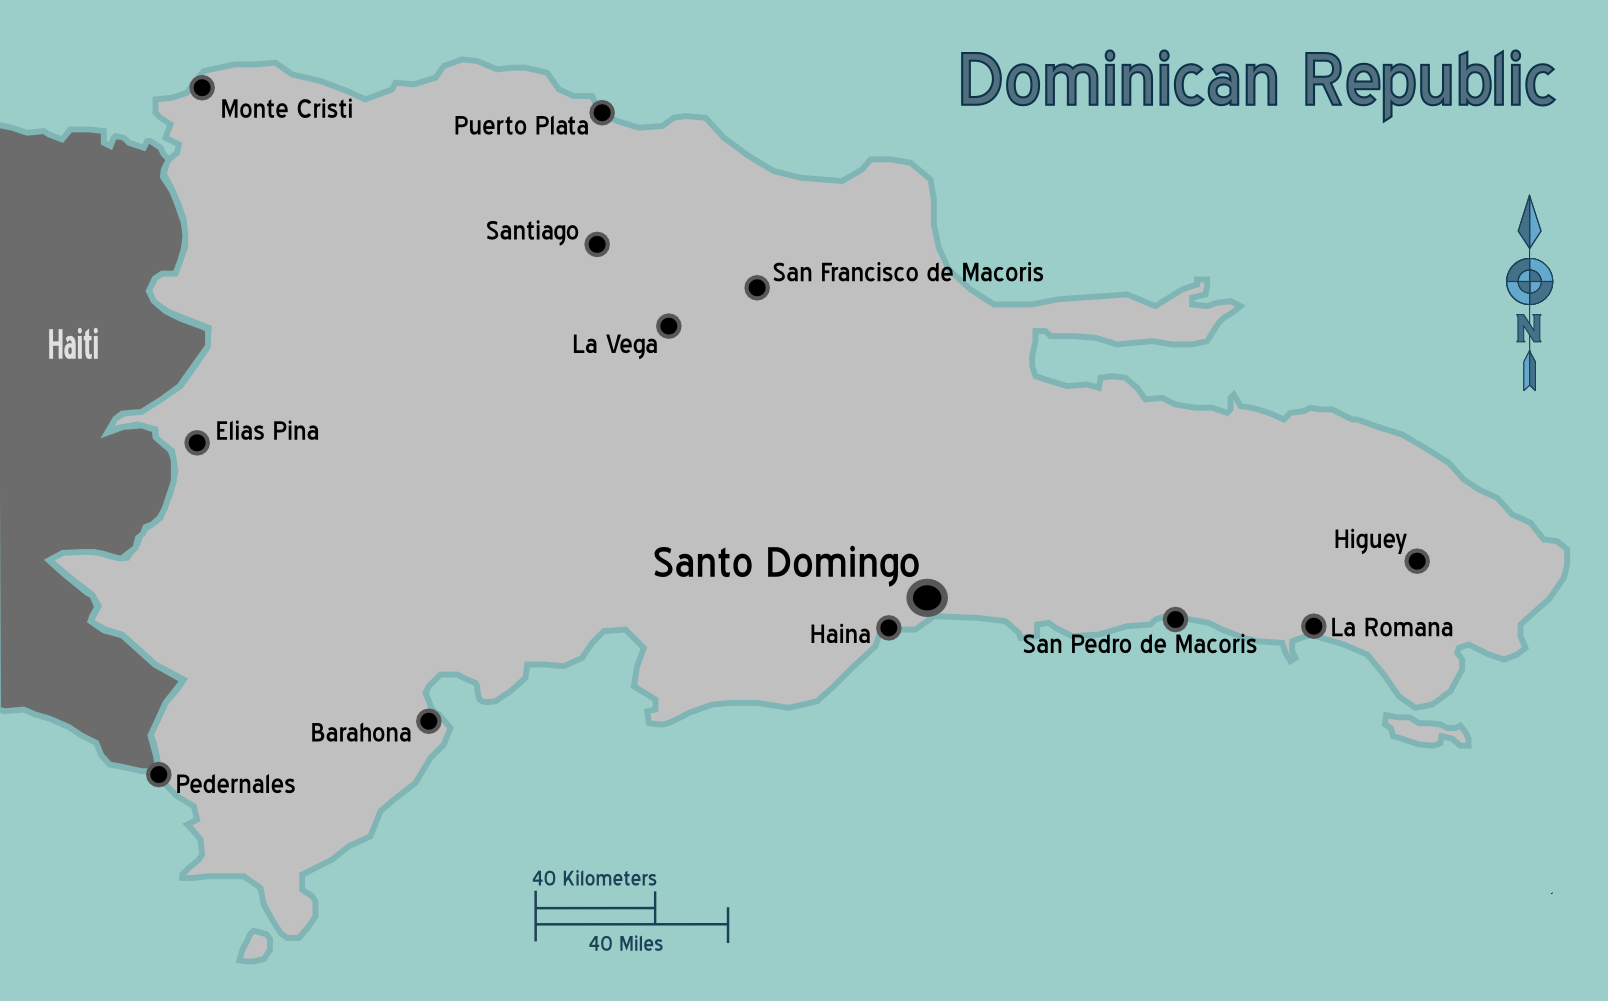 File:Map of Dominican Republic.png - Wikimedia Commons